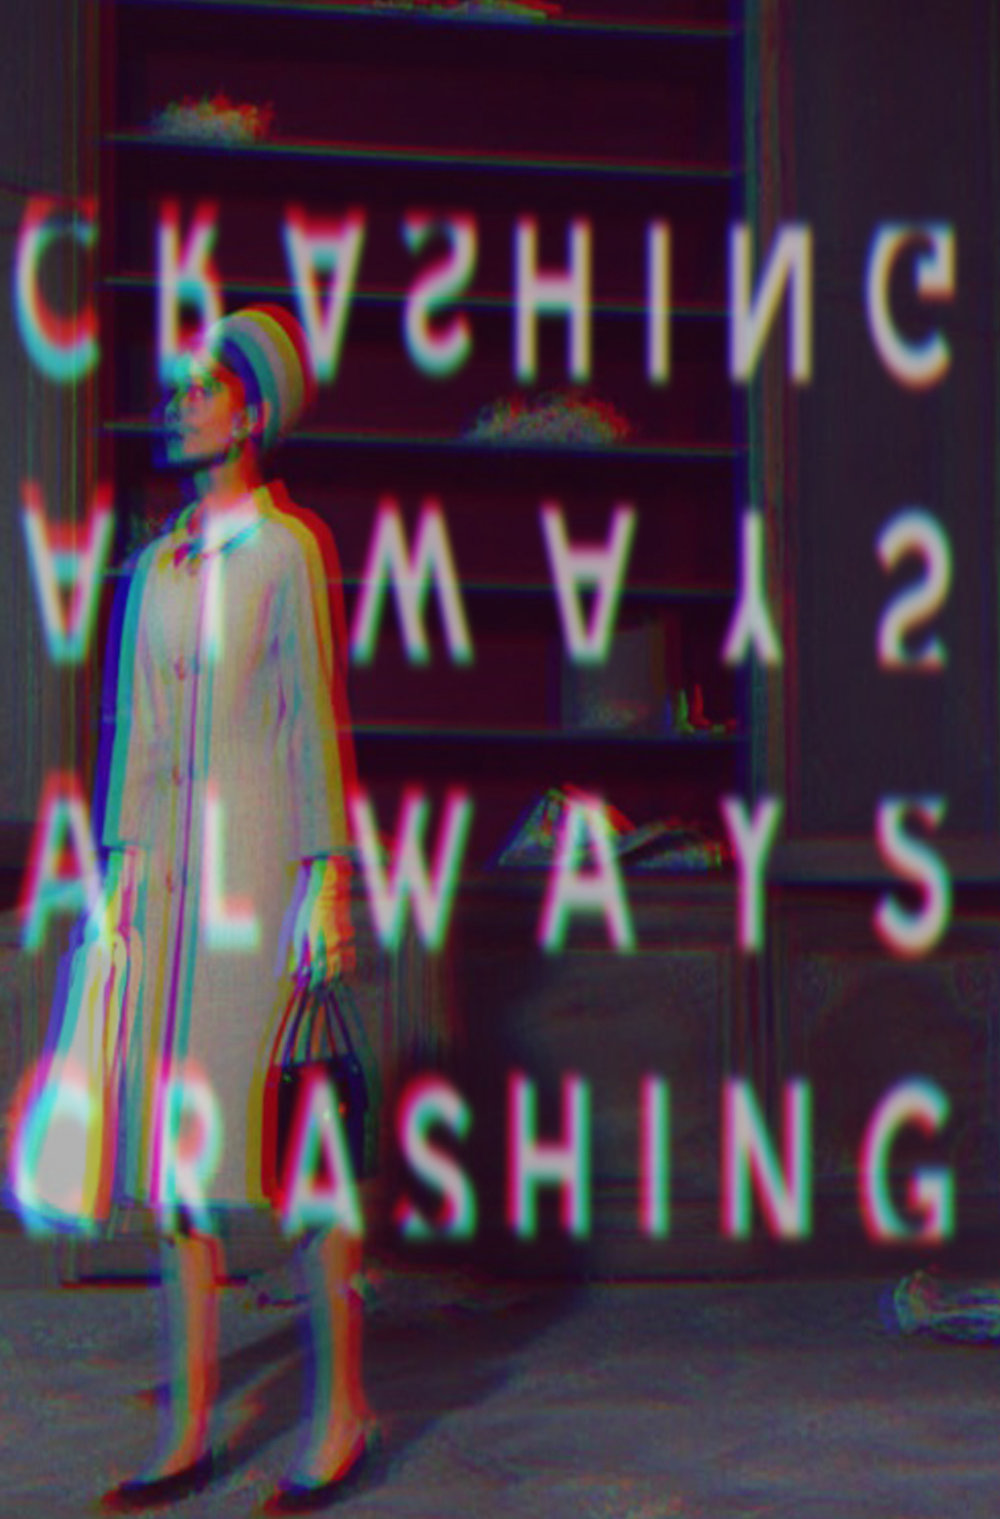 ALWAYS CRASHING ISSUE 1